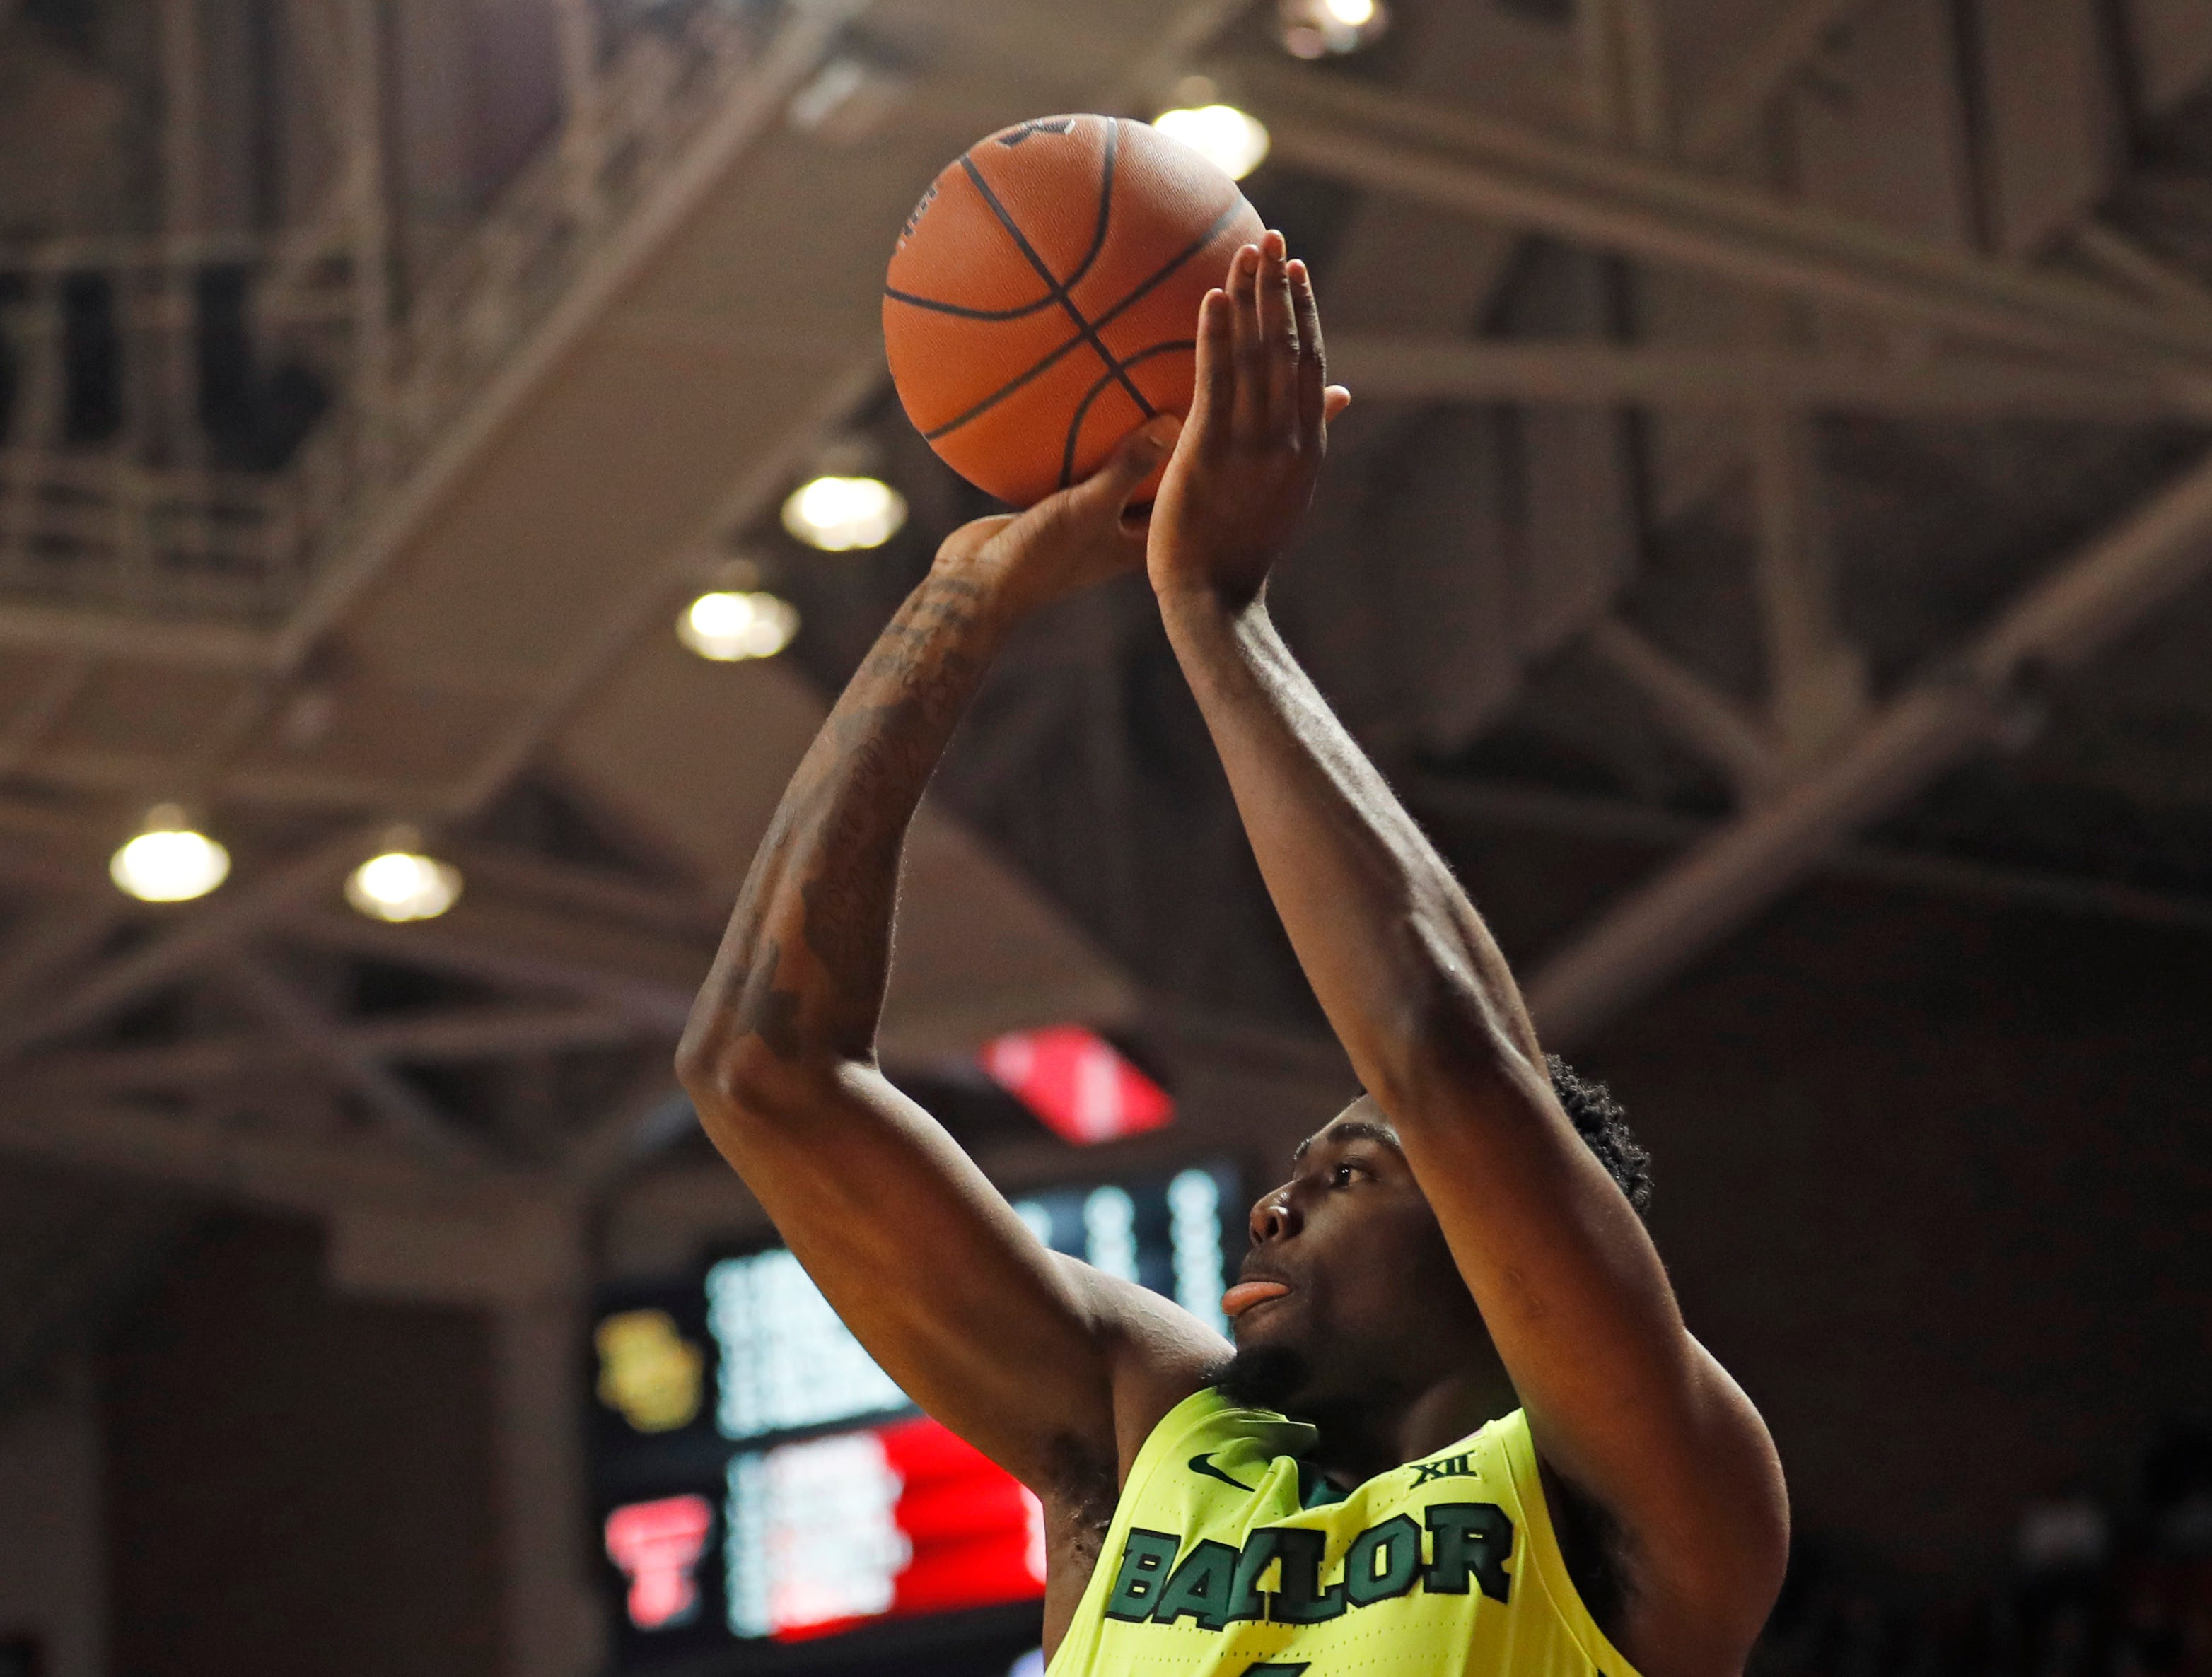 Baylor's Mario Kegler (4) shoots the ball for three points during the first half of an NCAA college basketball game against Texas Tech, Saturday, Feb. 16, 2019, in Lubbock, Texas. (AP Photo/Brad Tollefson)